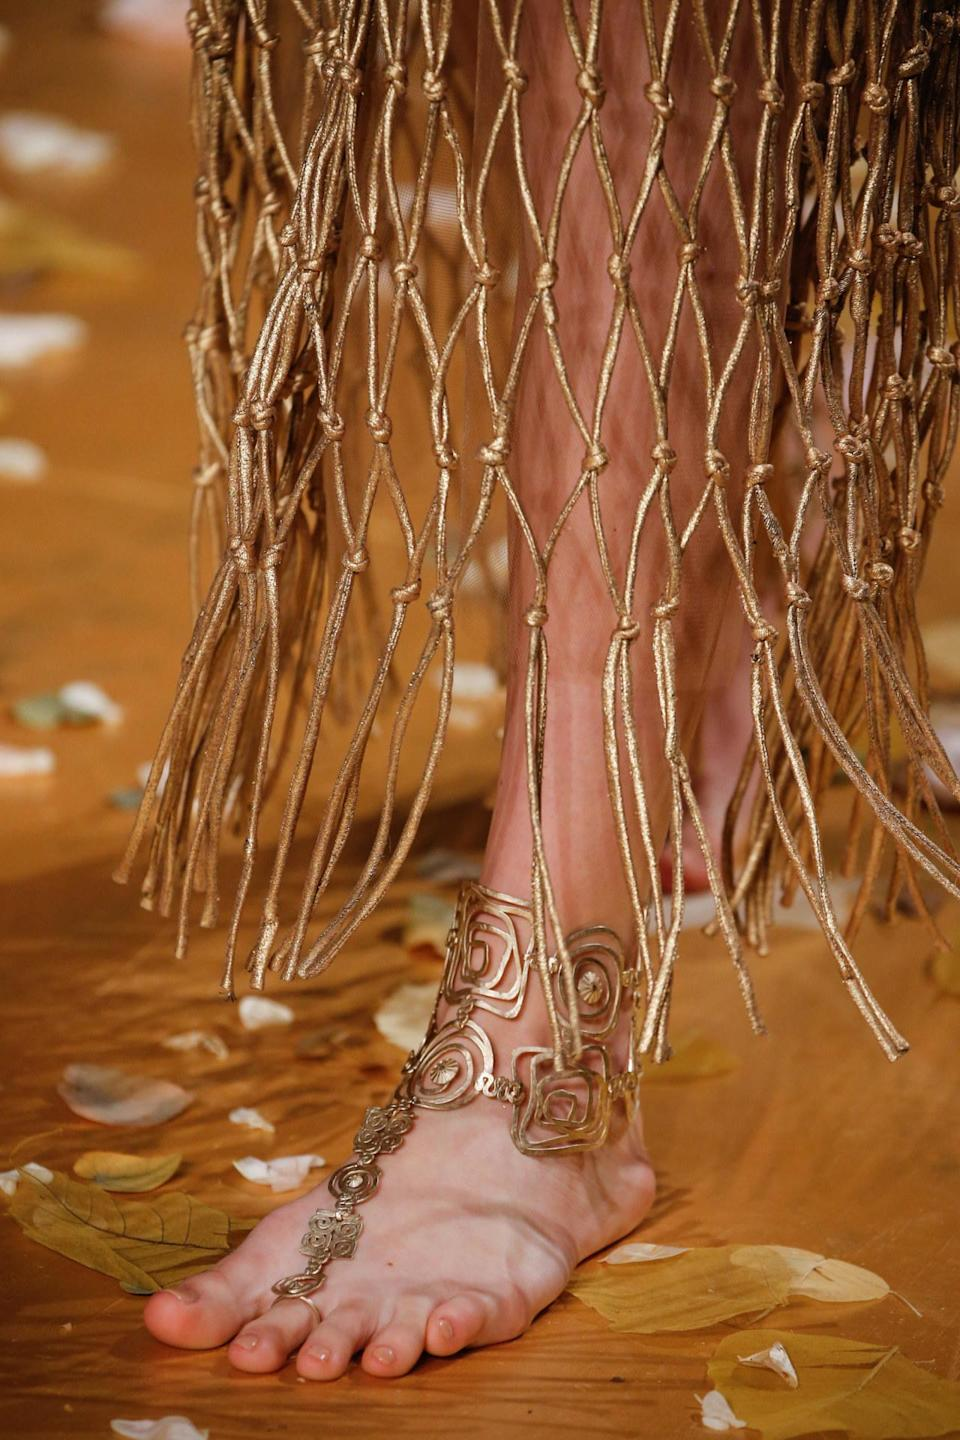 """<p>First rule of couture club: never let those well-groomed toes touch the ground. <a href=""""http://www.valentino.com/us"""" rel=""""nofollow noopener"""" target=""""_blank"""" data-ylk=""""slk:Valentino"""" class=""""link rapid-noclick-resp"""">Valentino </a>offers filigreed feet jewelry for indoor use only. <i>Photos: Imaxtree</i> </p>"""